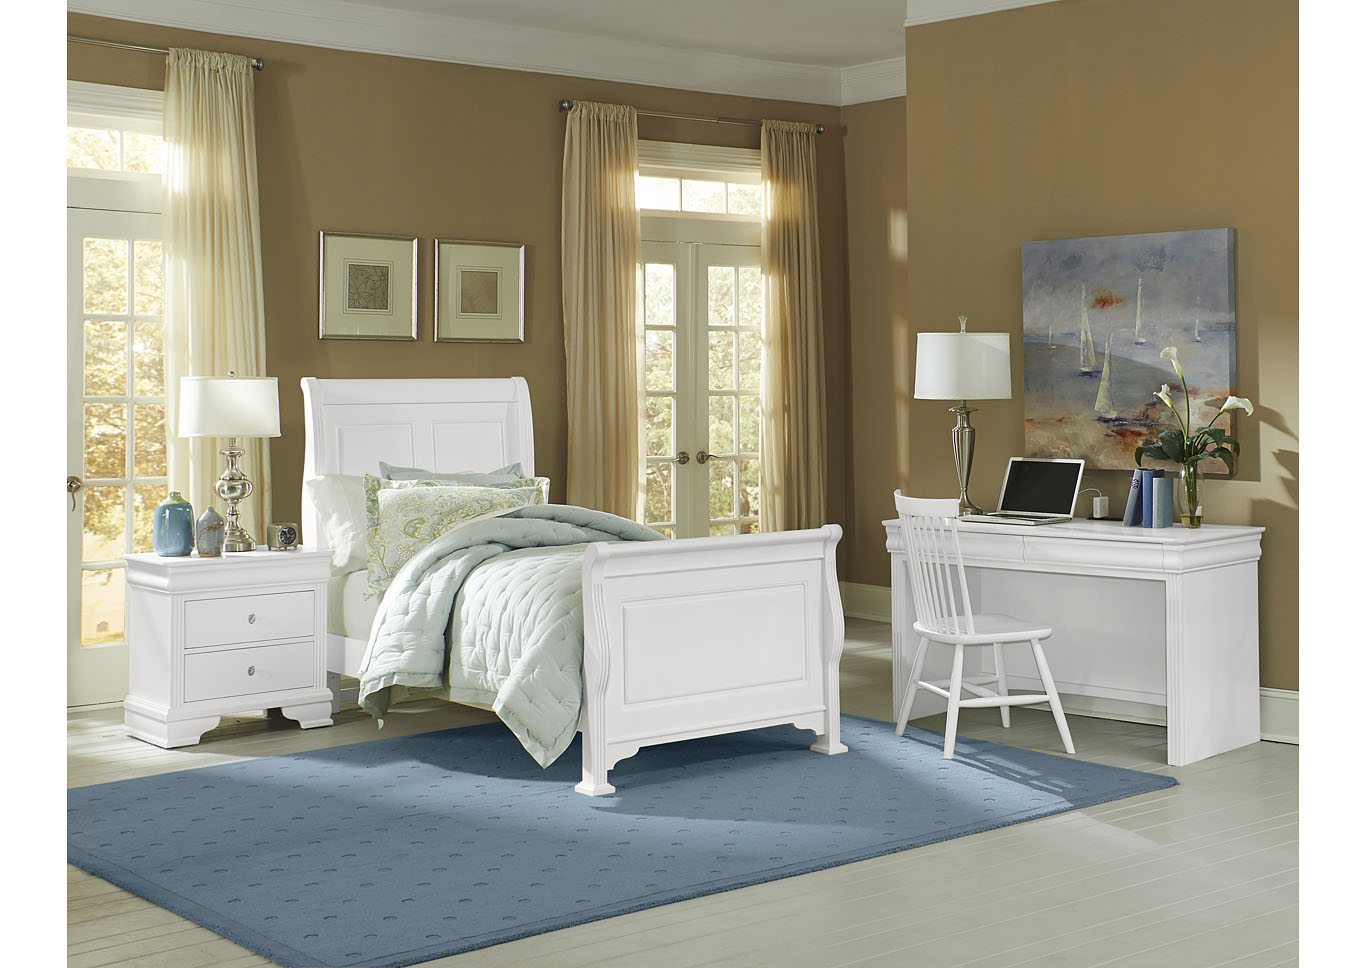 French Market Soft White Twin Poster Bed w/ Desk and Chair,Vaughan-Bassett